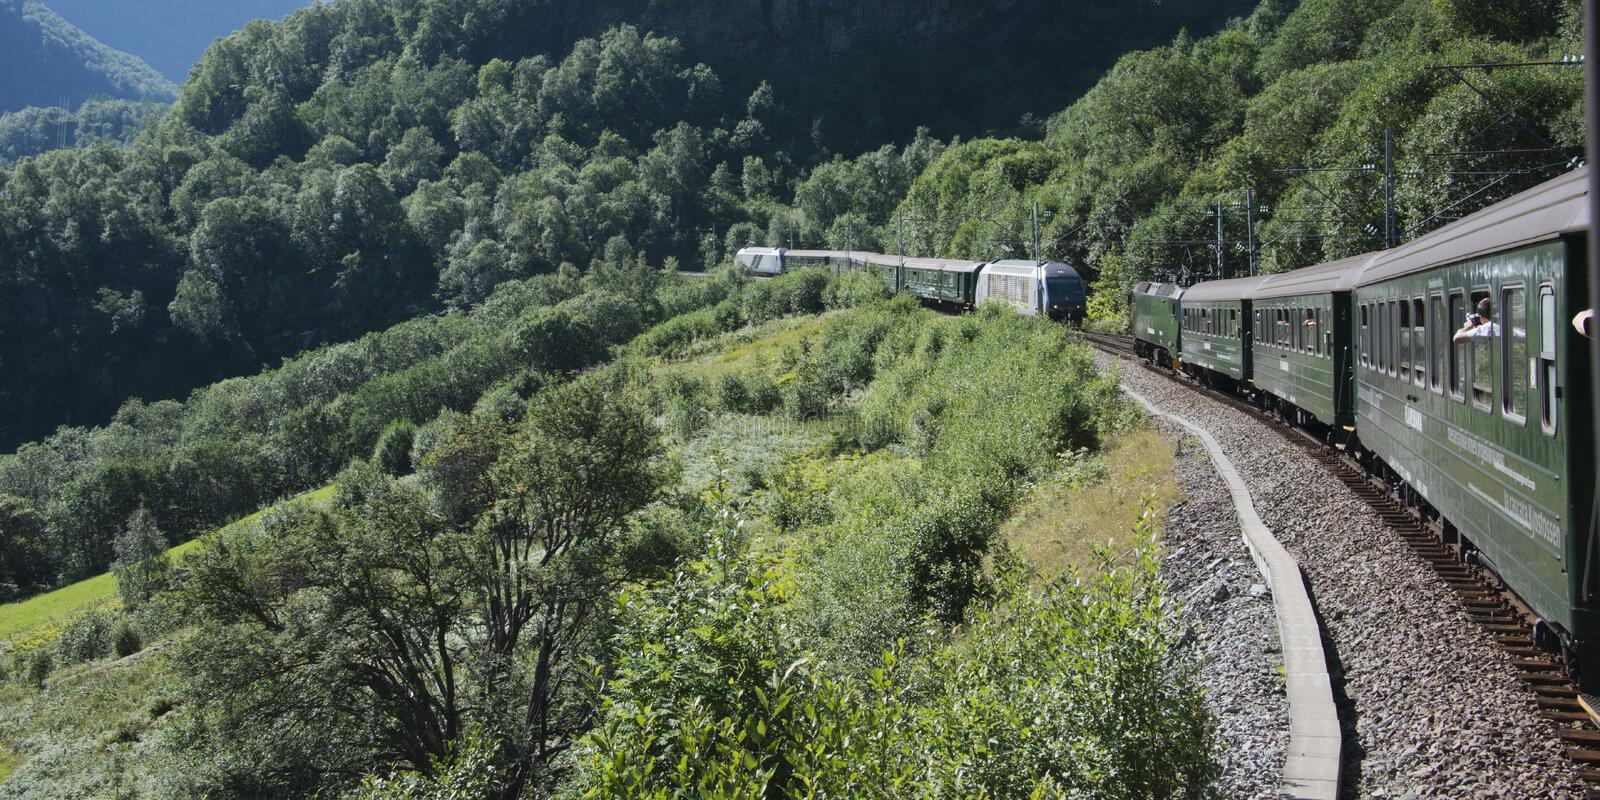 Landscape with trains stock images